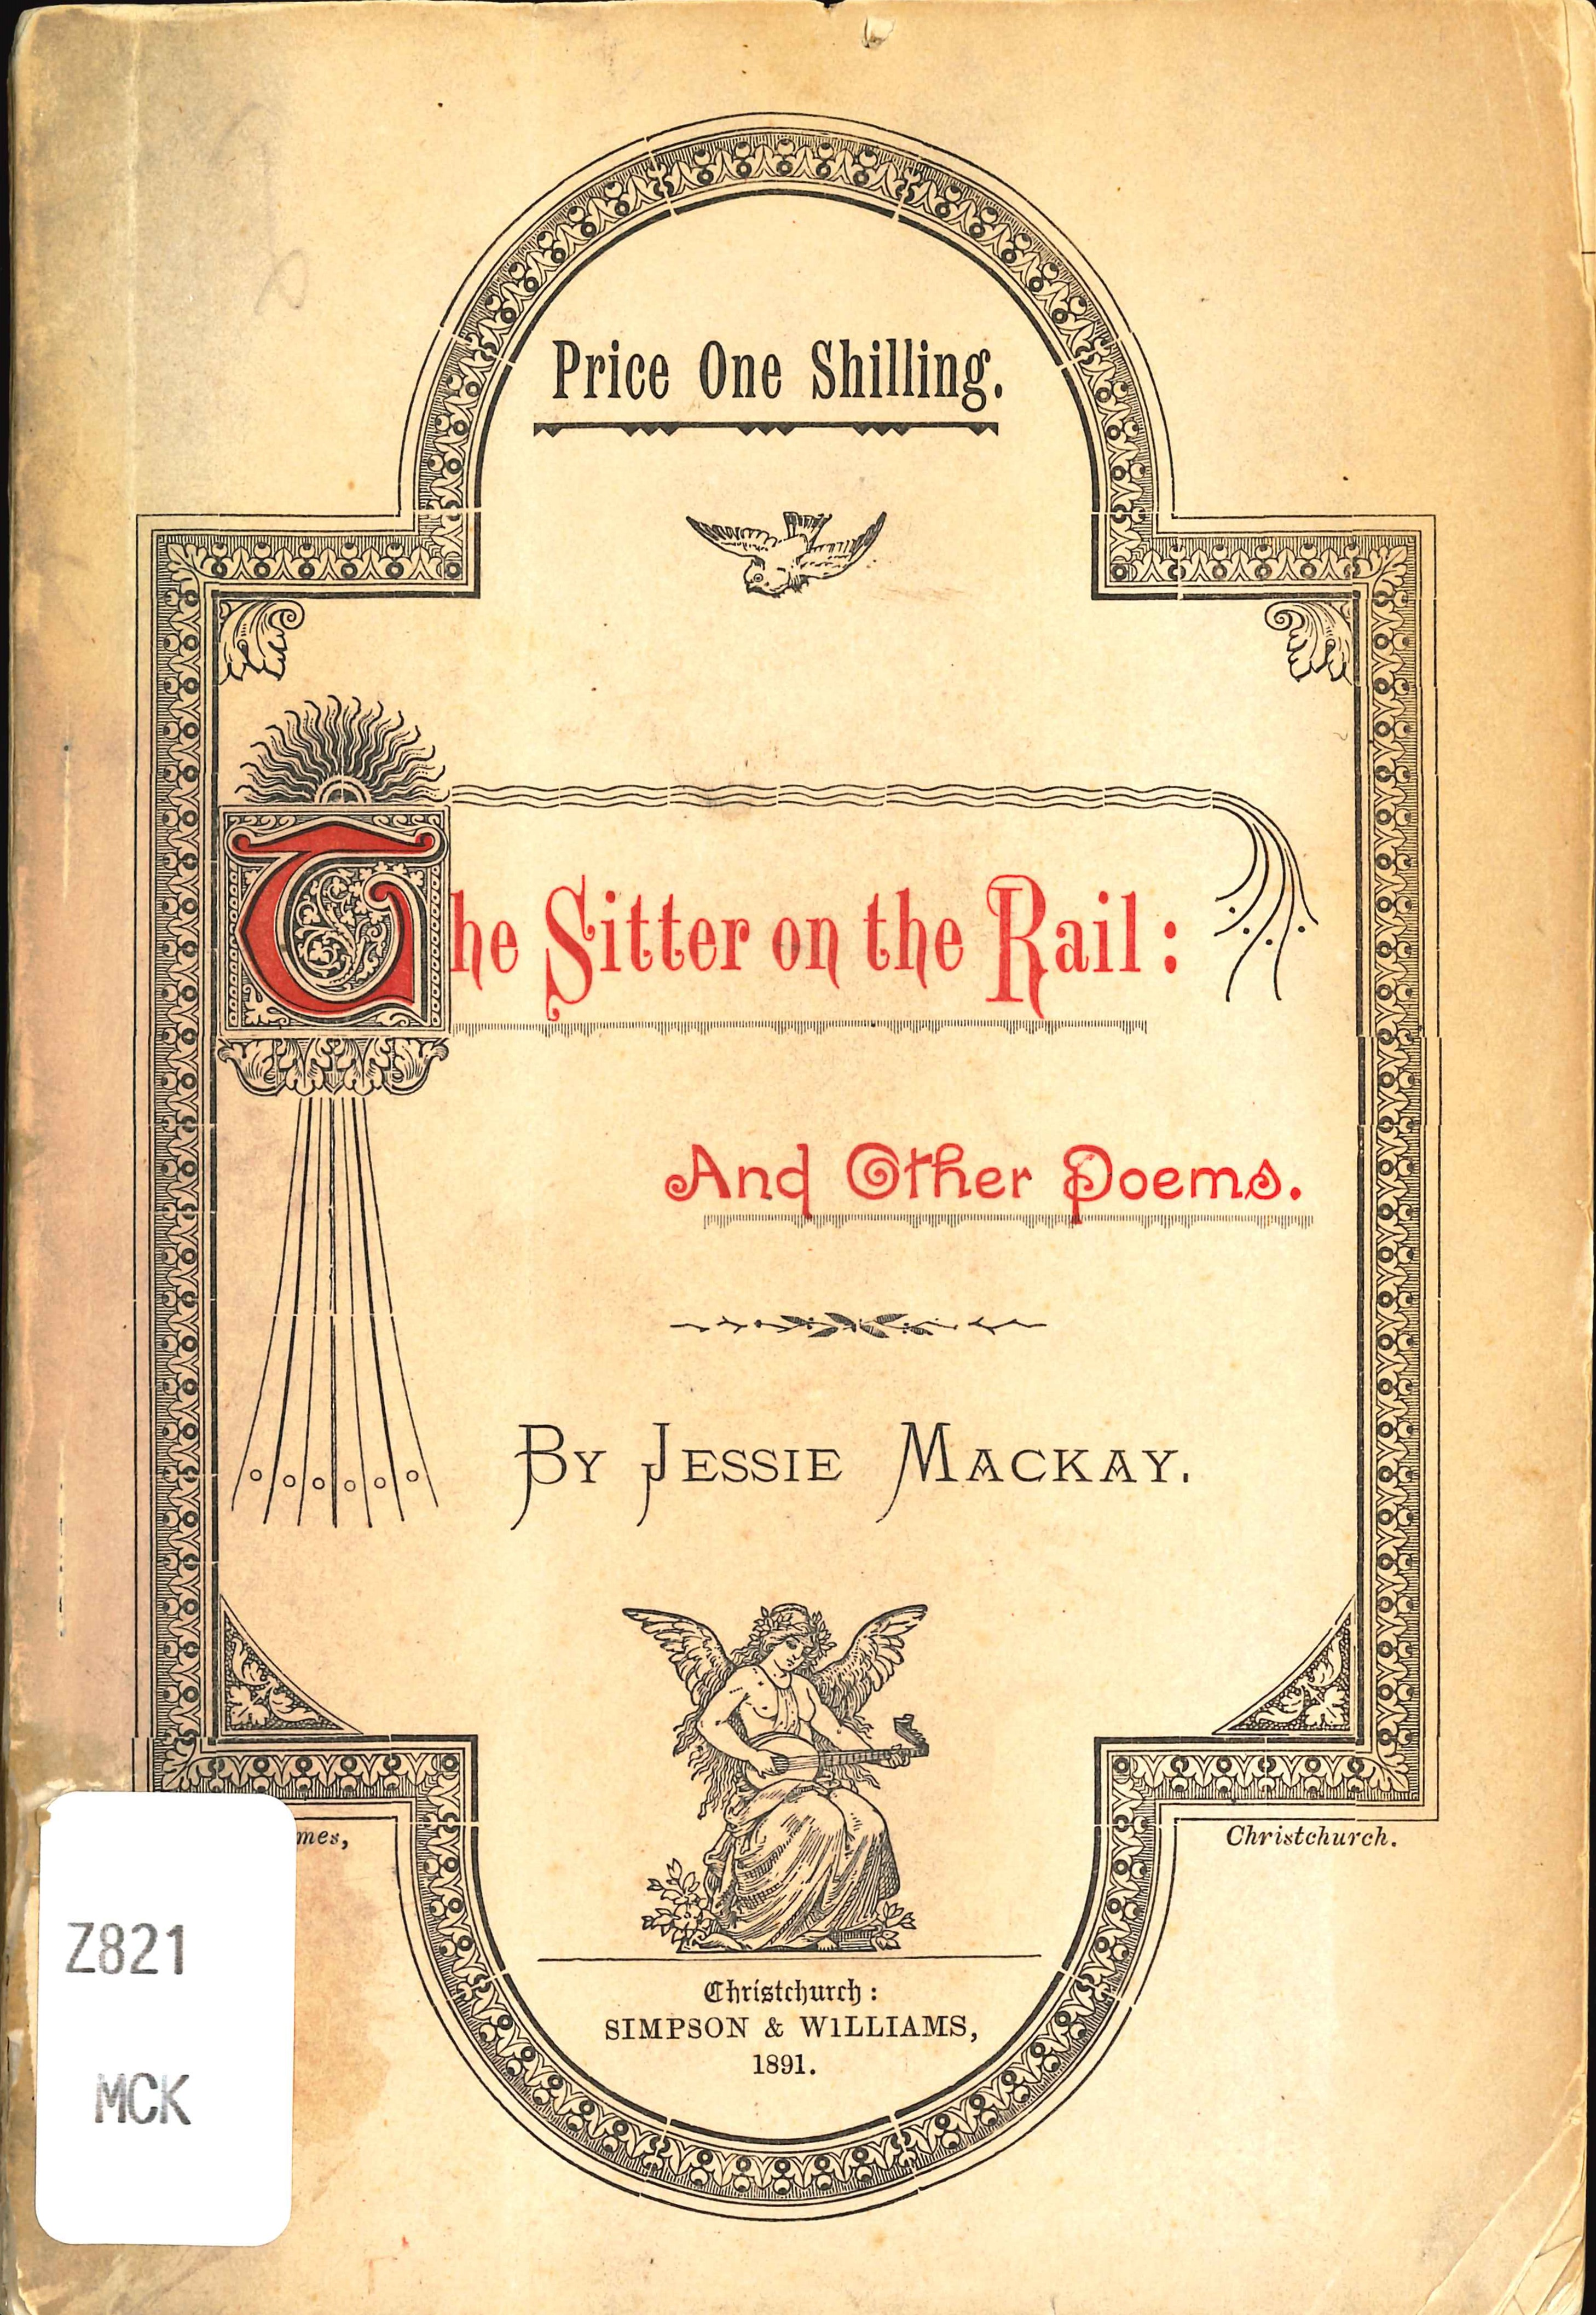 Jessie Mackay. The sitter on the rail, and other poems. Christchurch: Simpson and Williams, 1891.